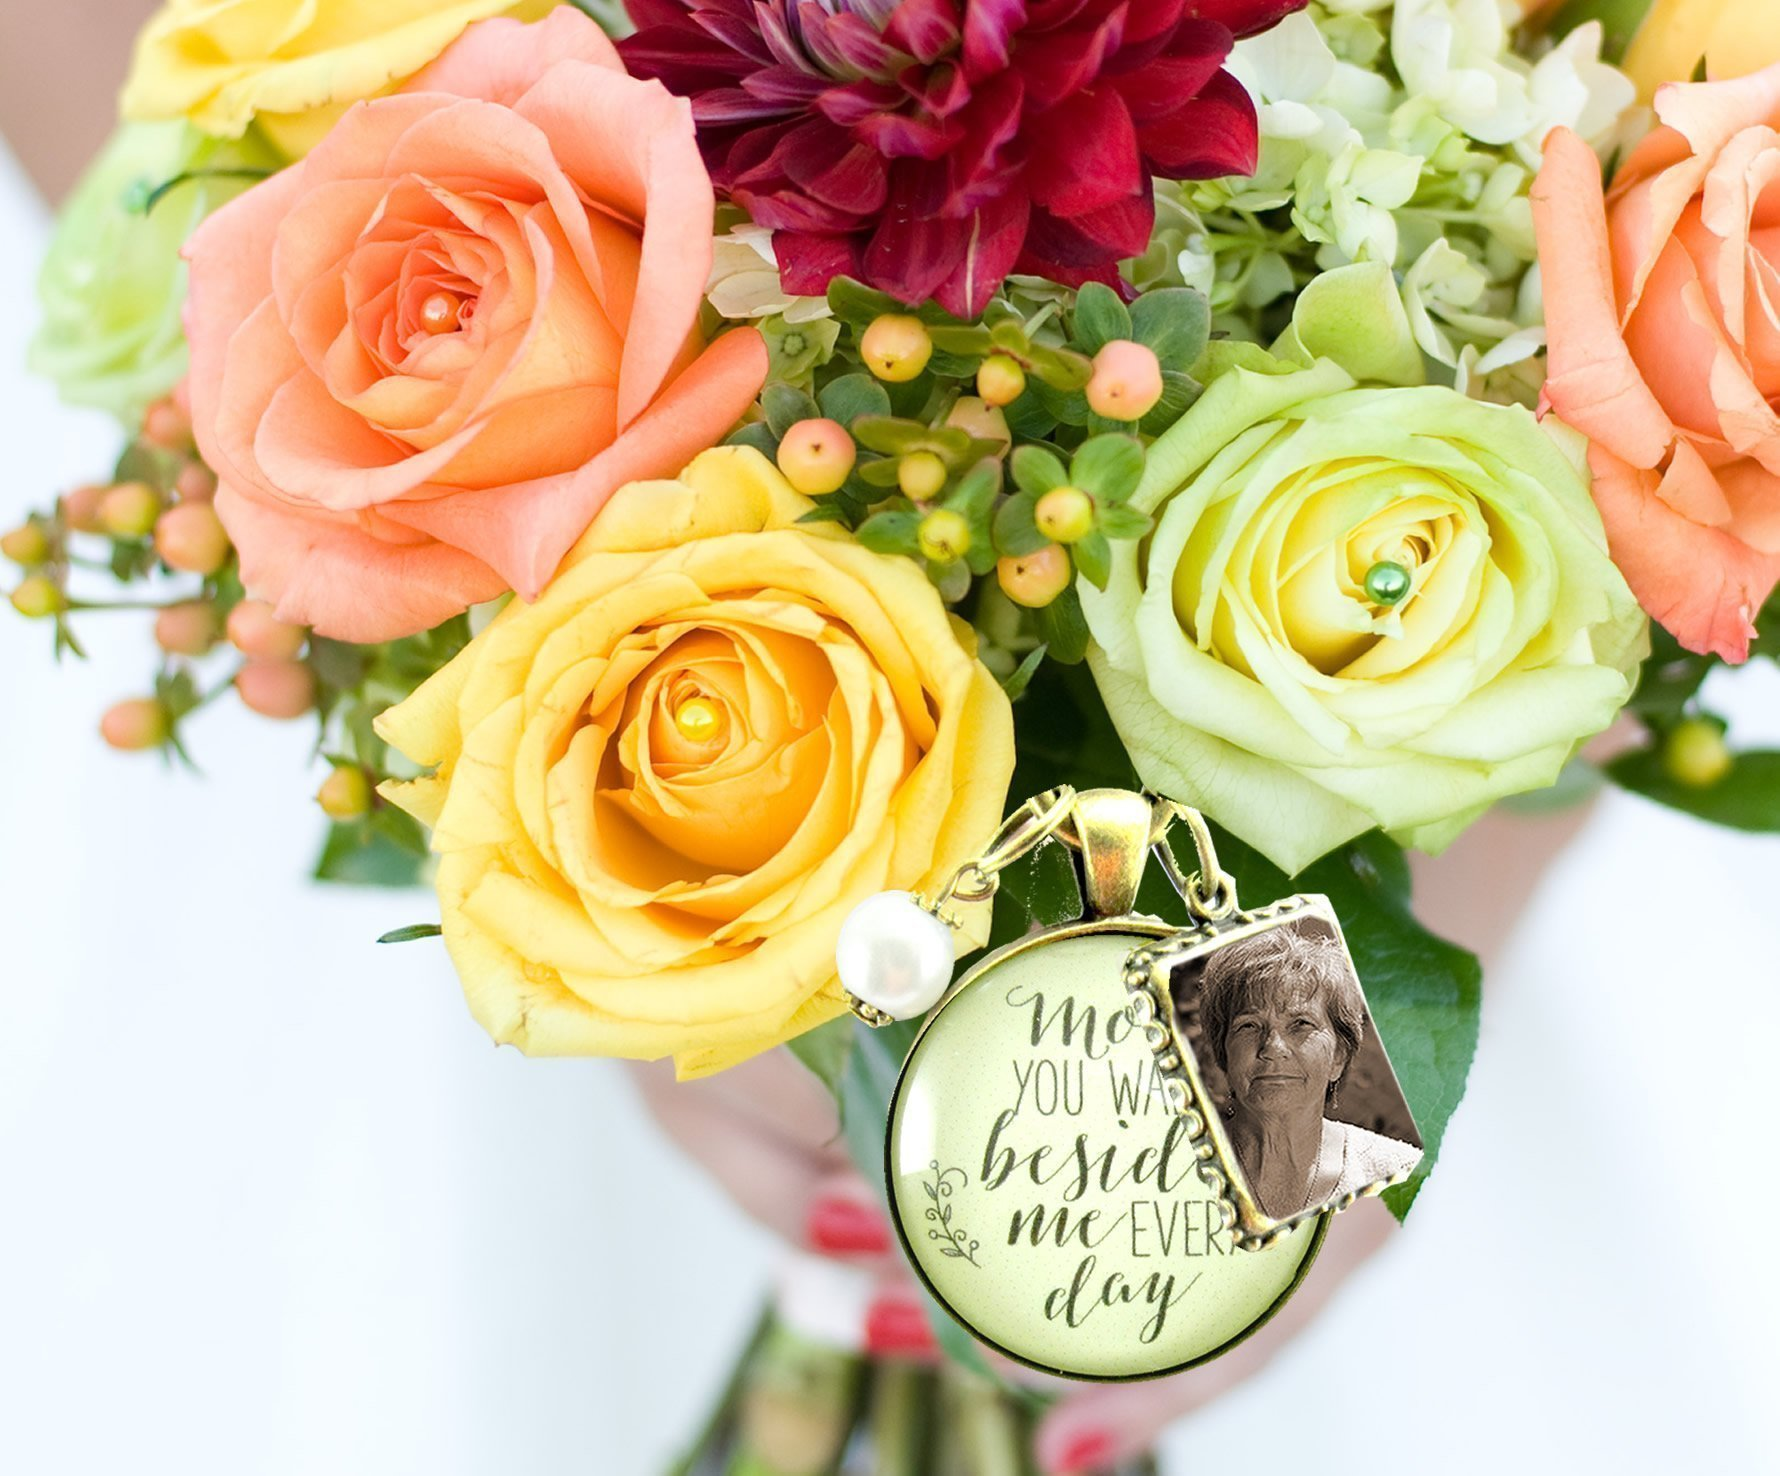 Bridal Bouquet Photo Charm Mom You Walk Beside Me Every Day Wedding Pendant Mother Memorial Remembrance Photo Jewelry